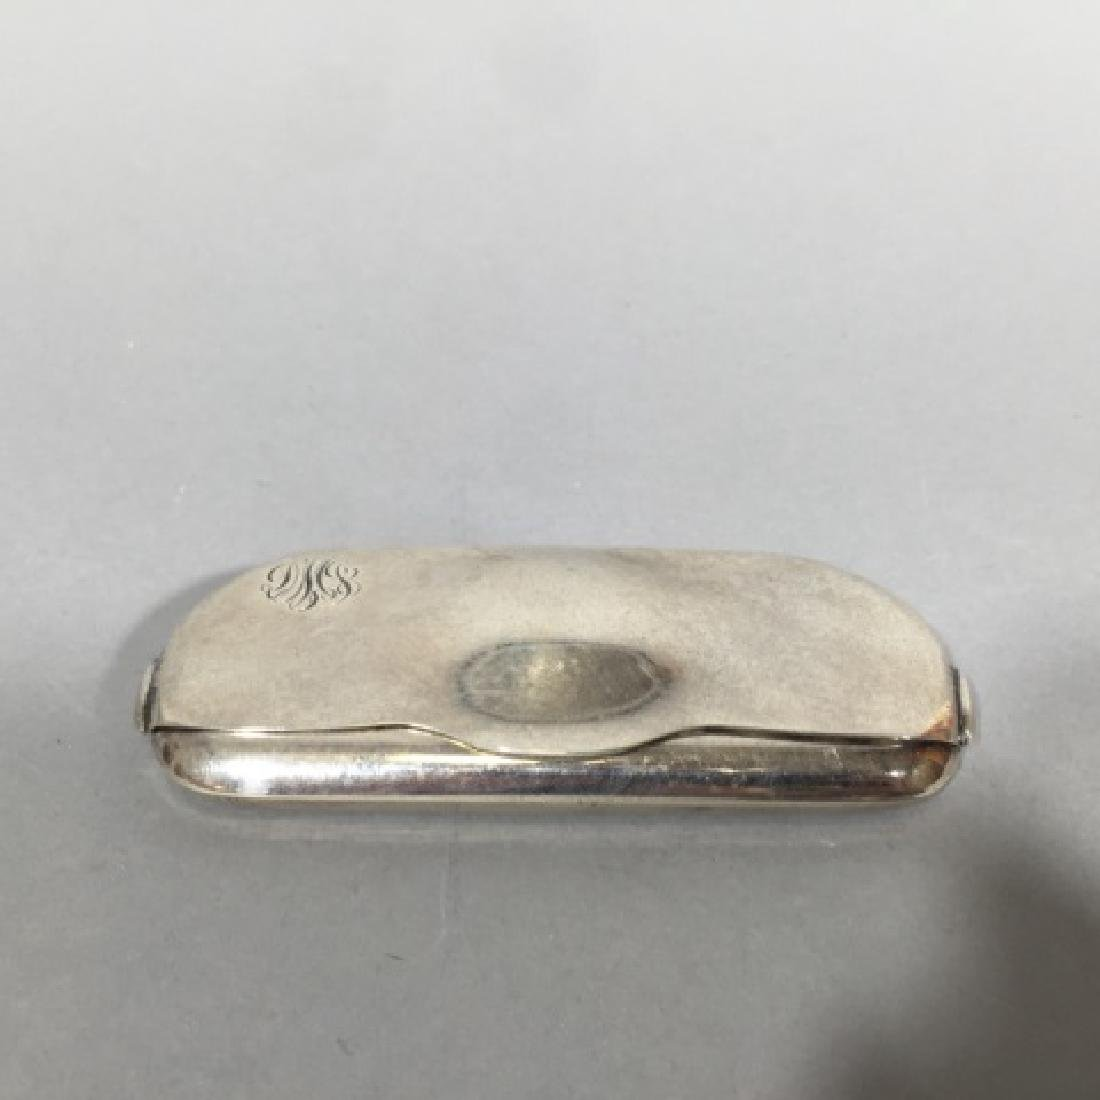 Antique Tiffany & Co Sterling Silver Glasses Case - 3